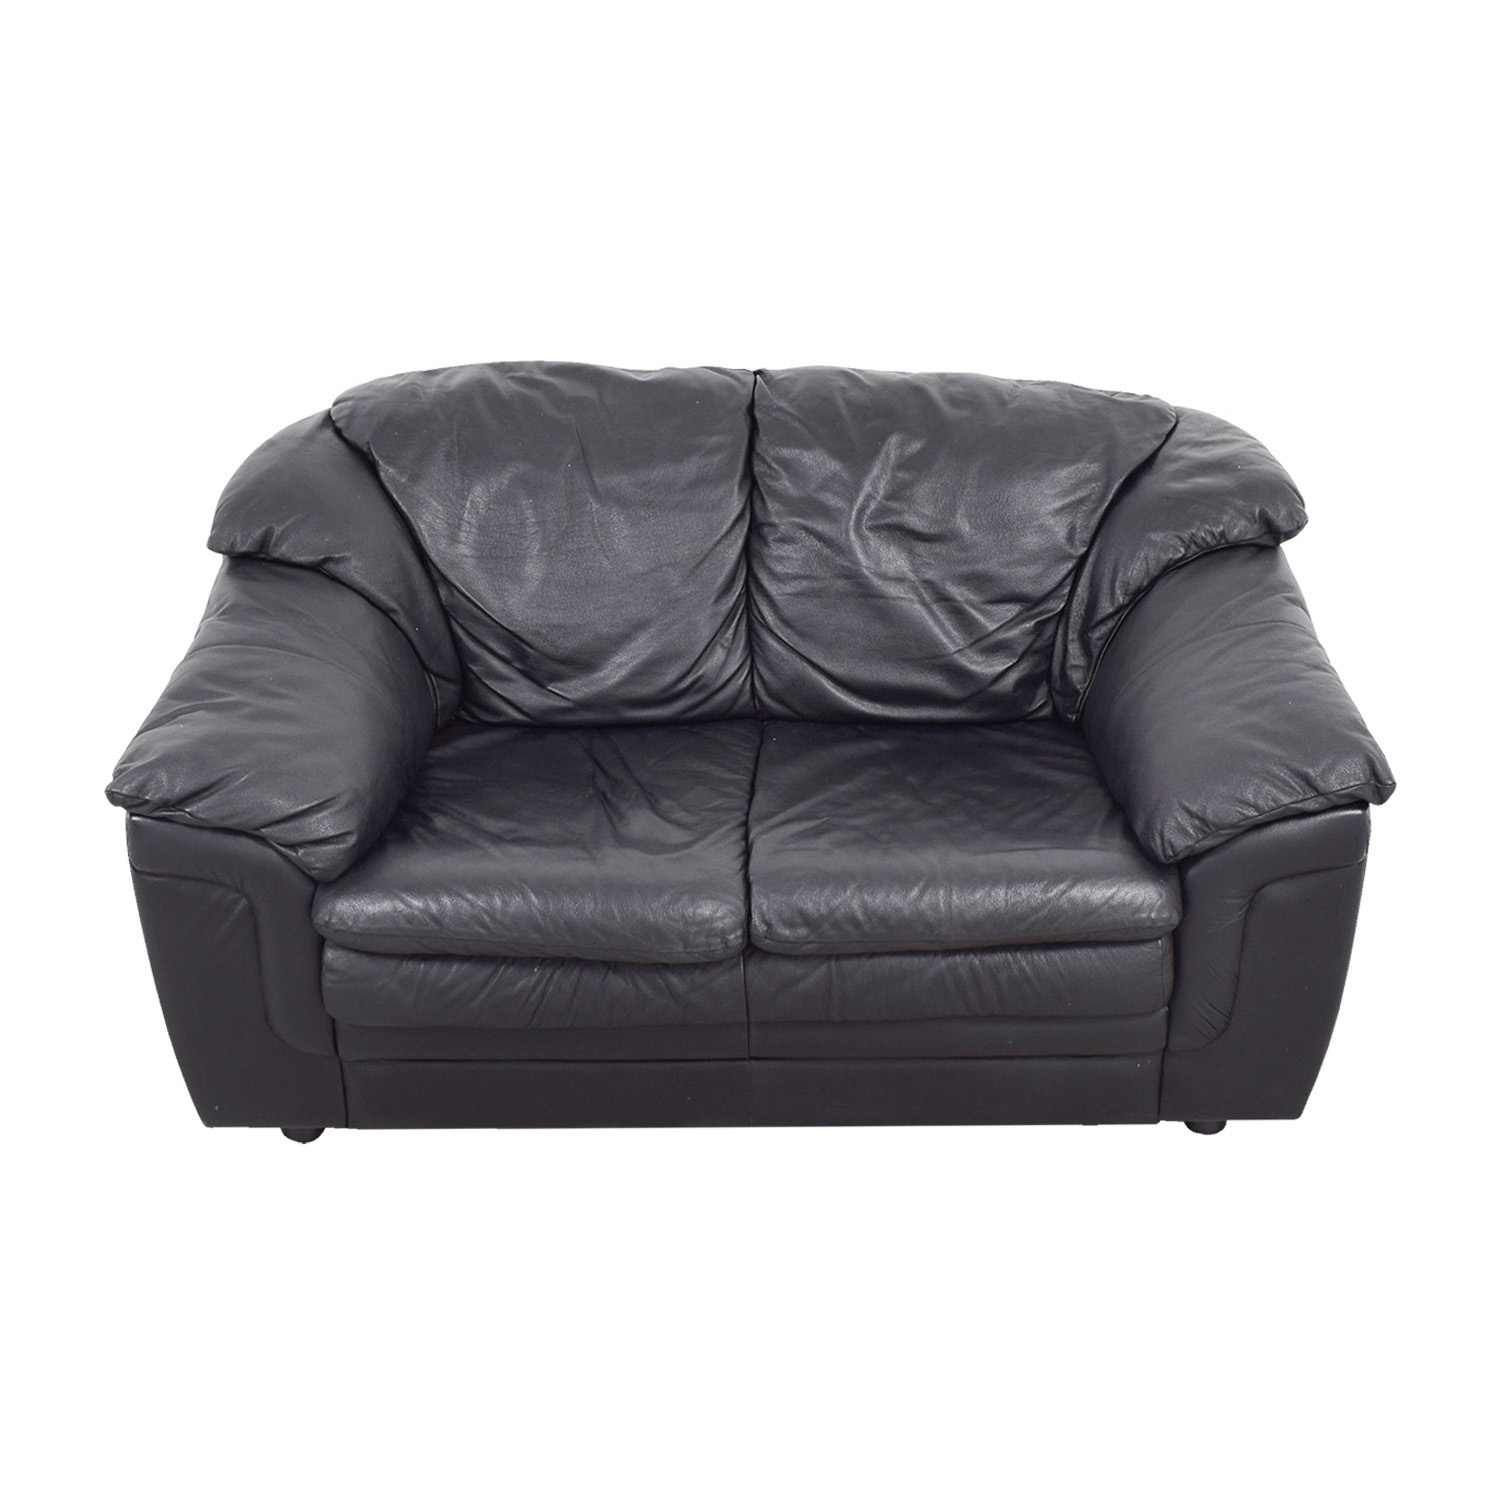 Jennifer Leather Black Italian Leather Love Seat / Sofas